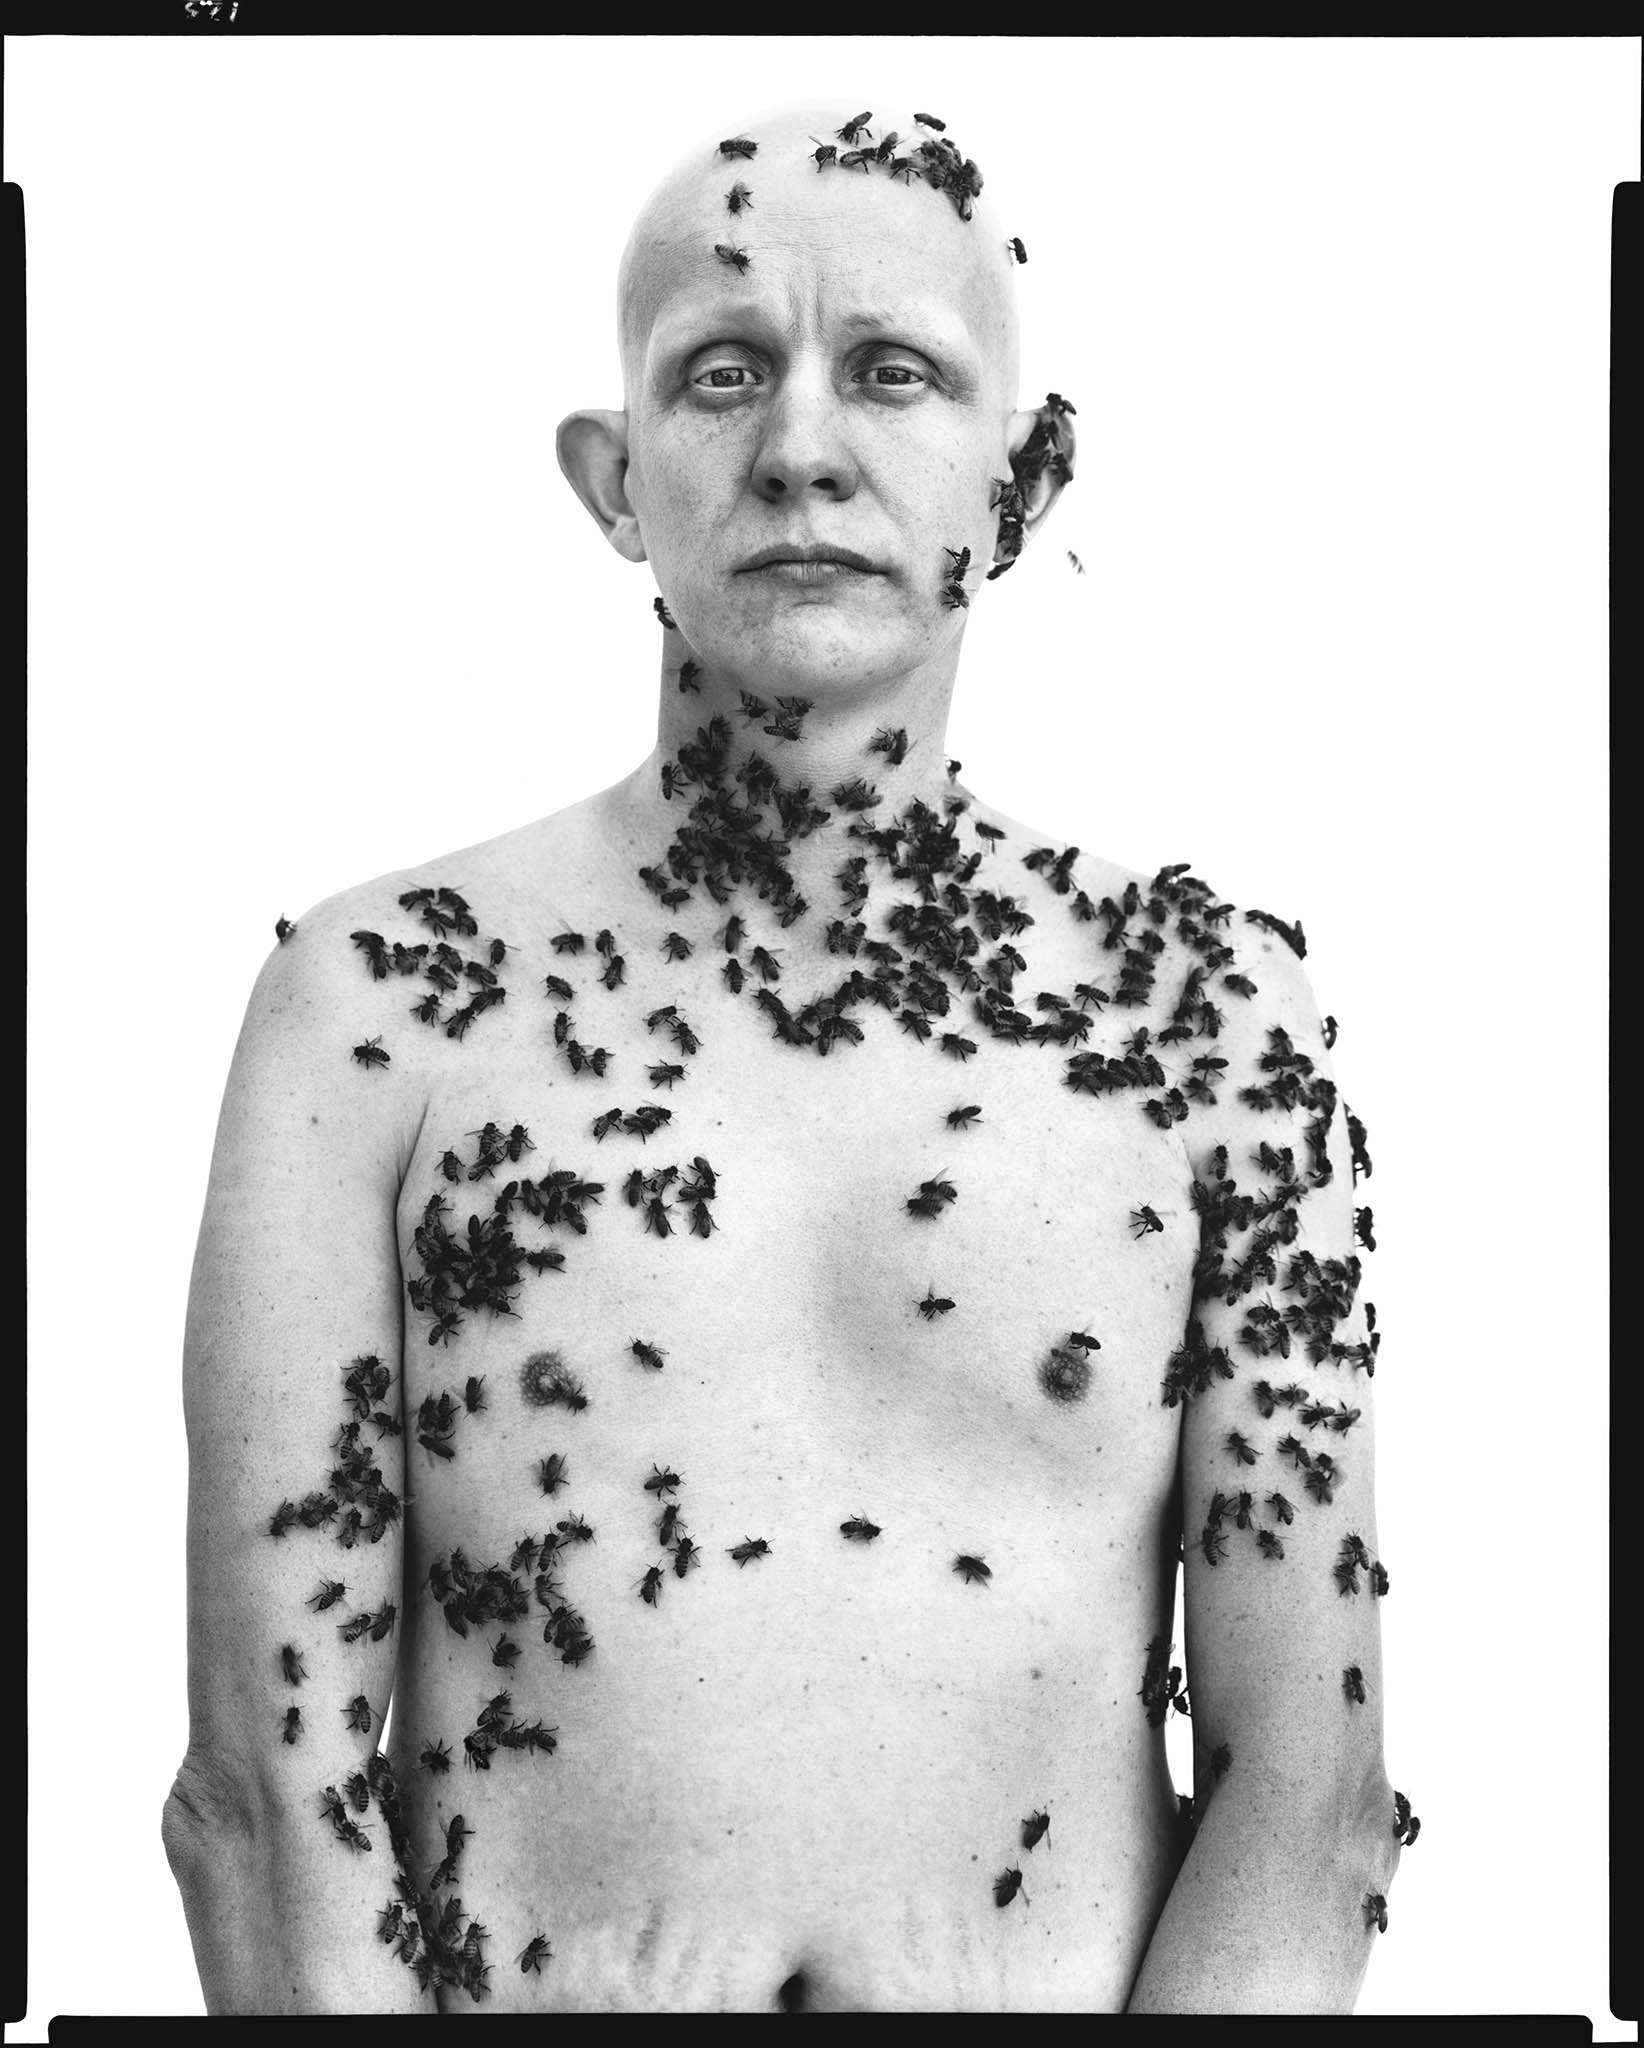 Ronald Fischer, beekeeper, Davis, California, May 9, 1981